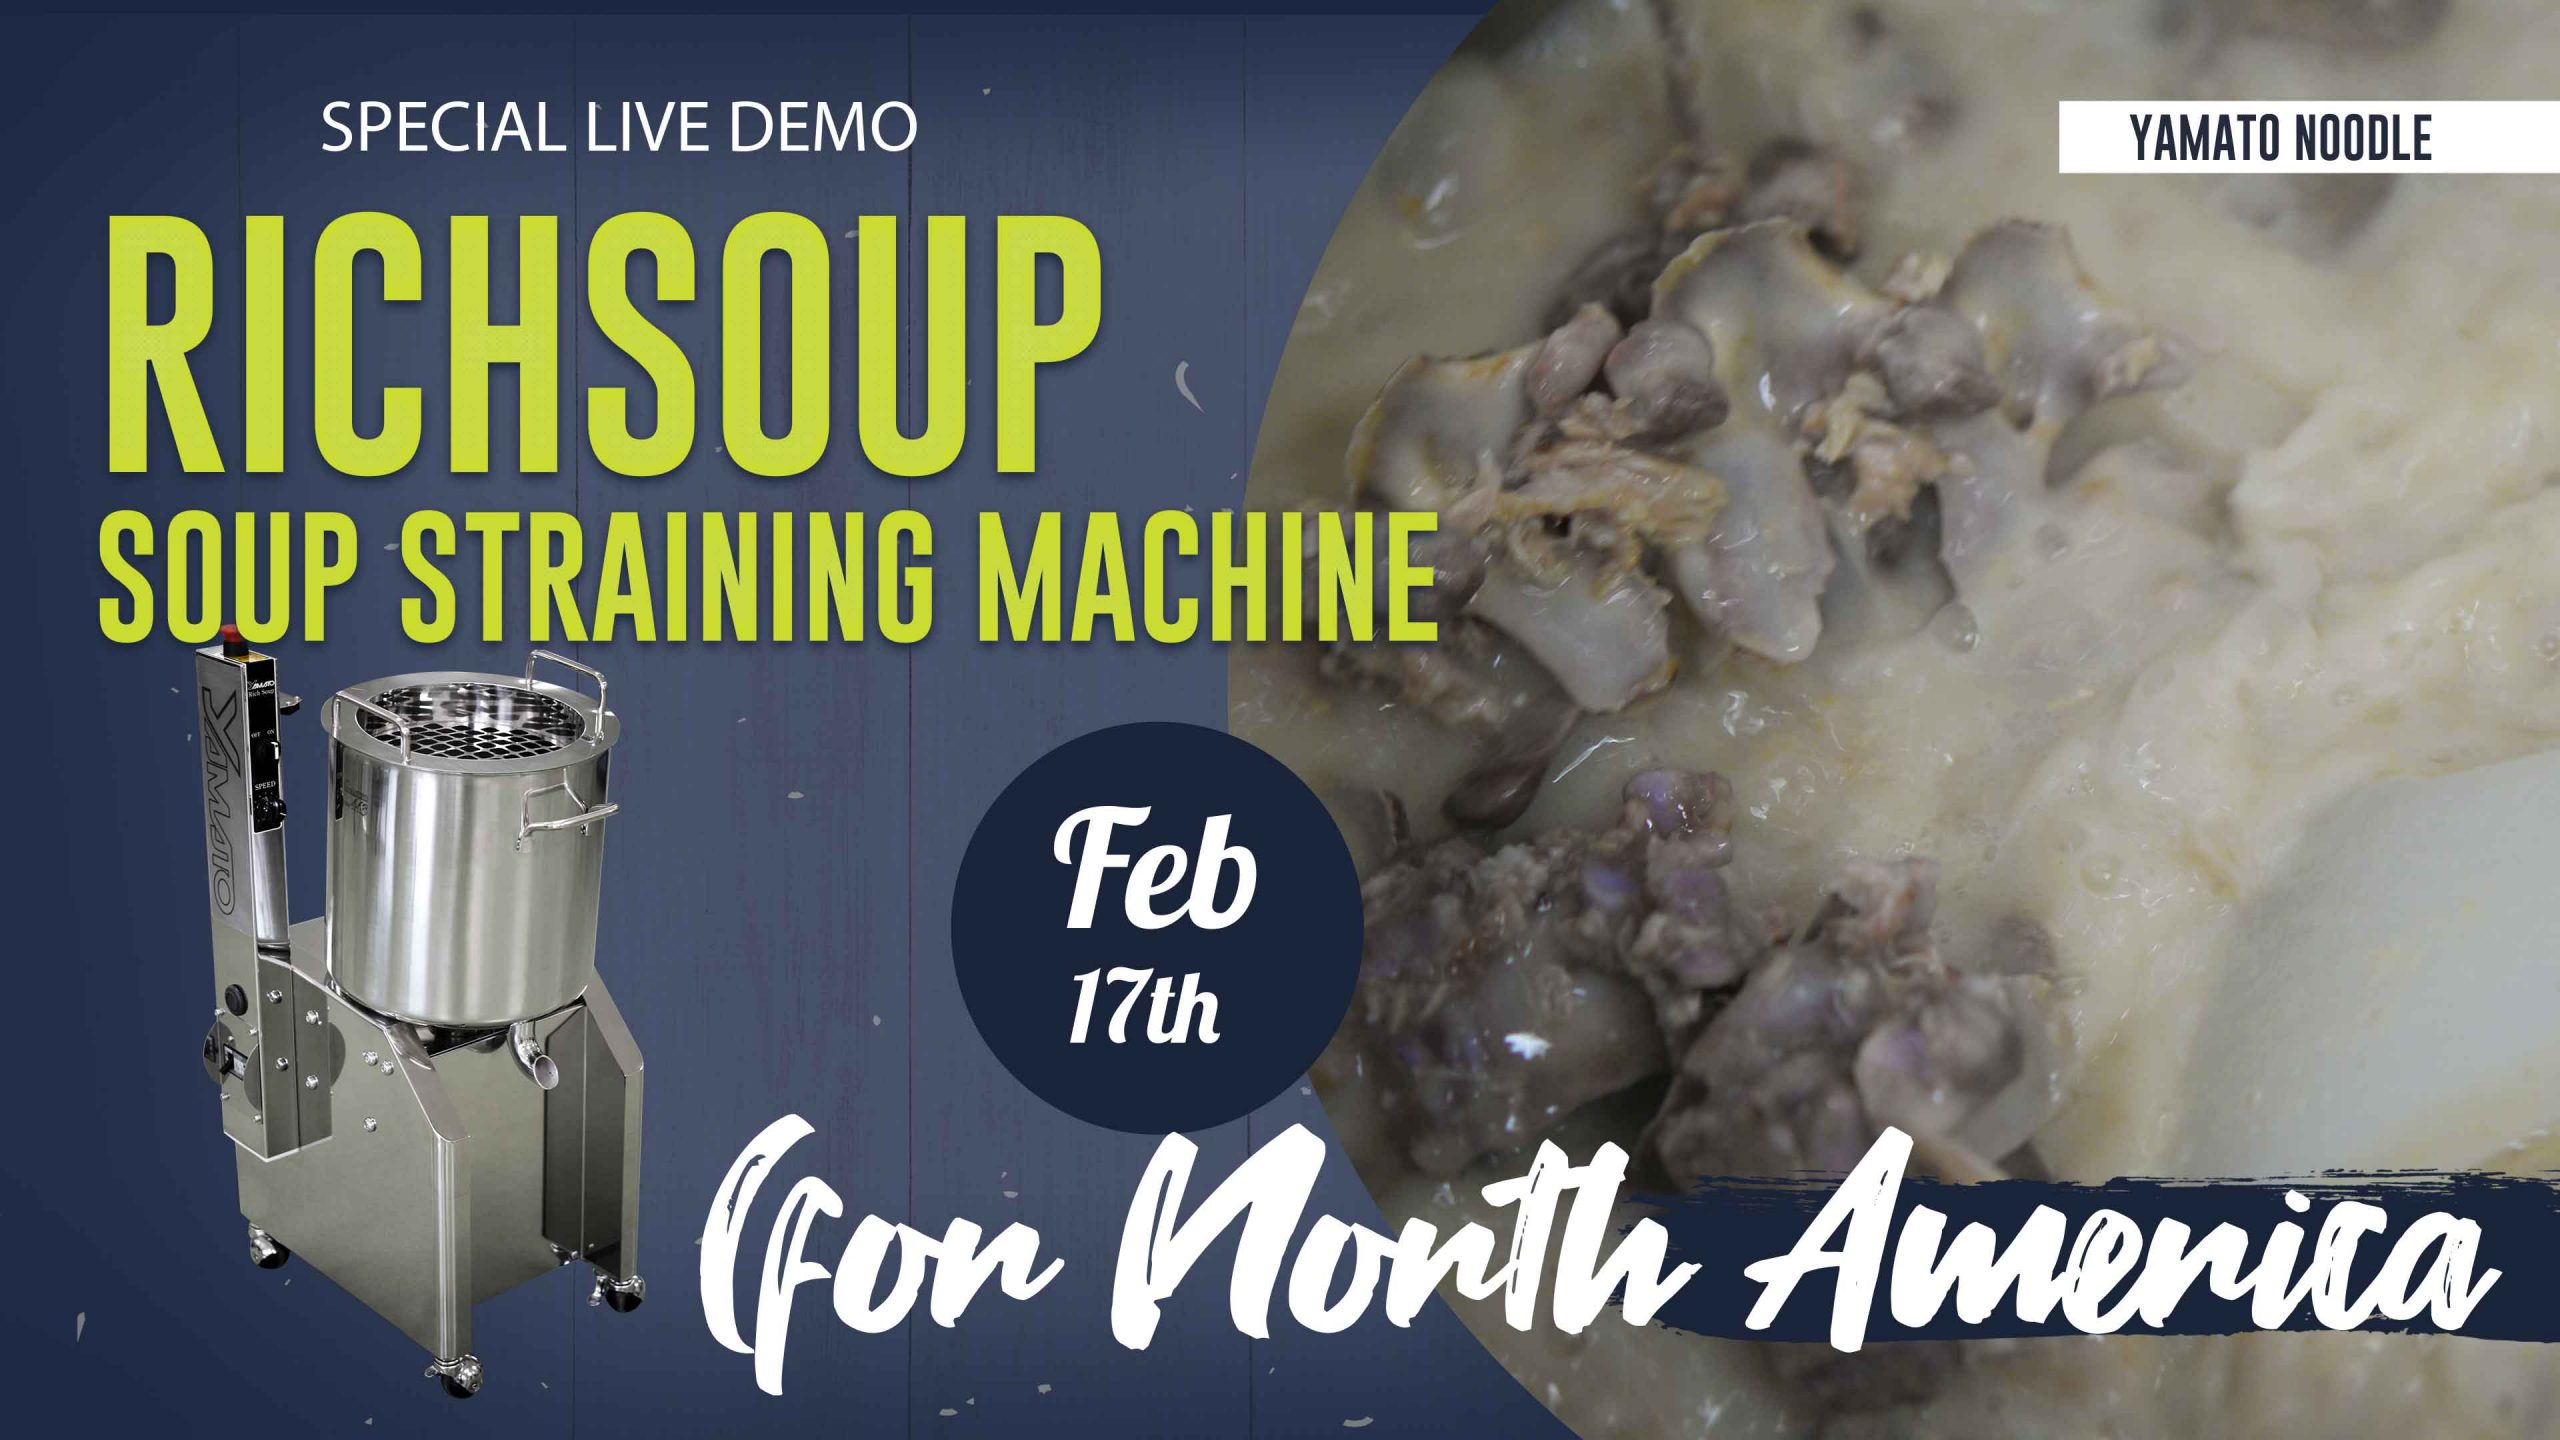 Feb. 17th- special live demo – RichSoup – soup straining machine (for North America)